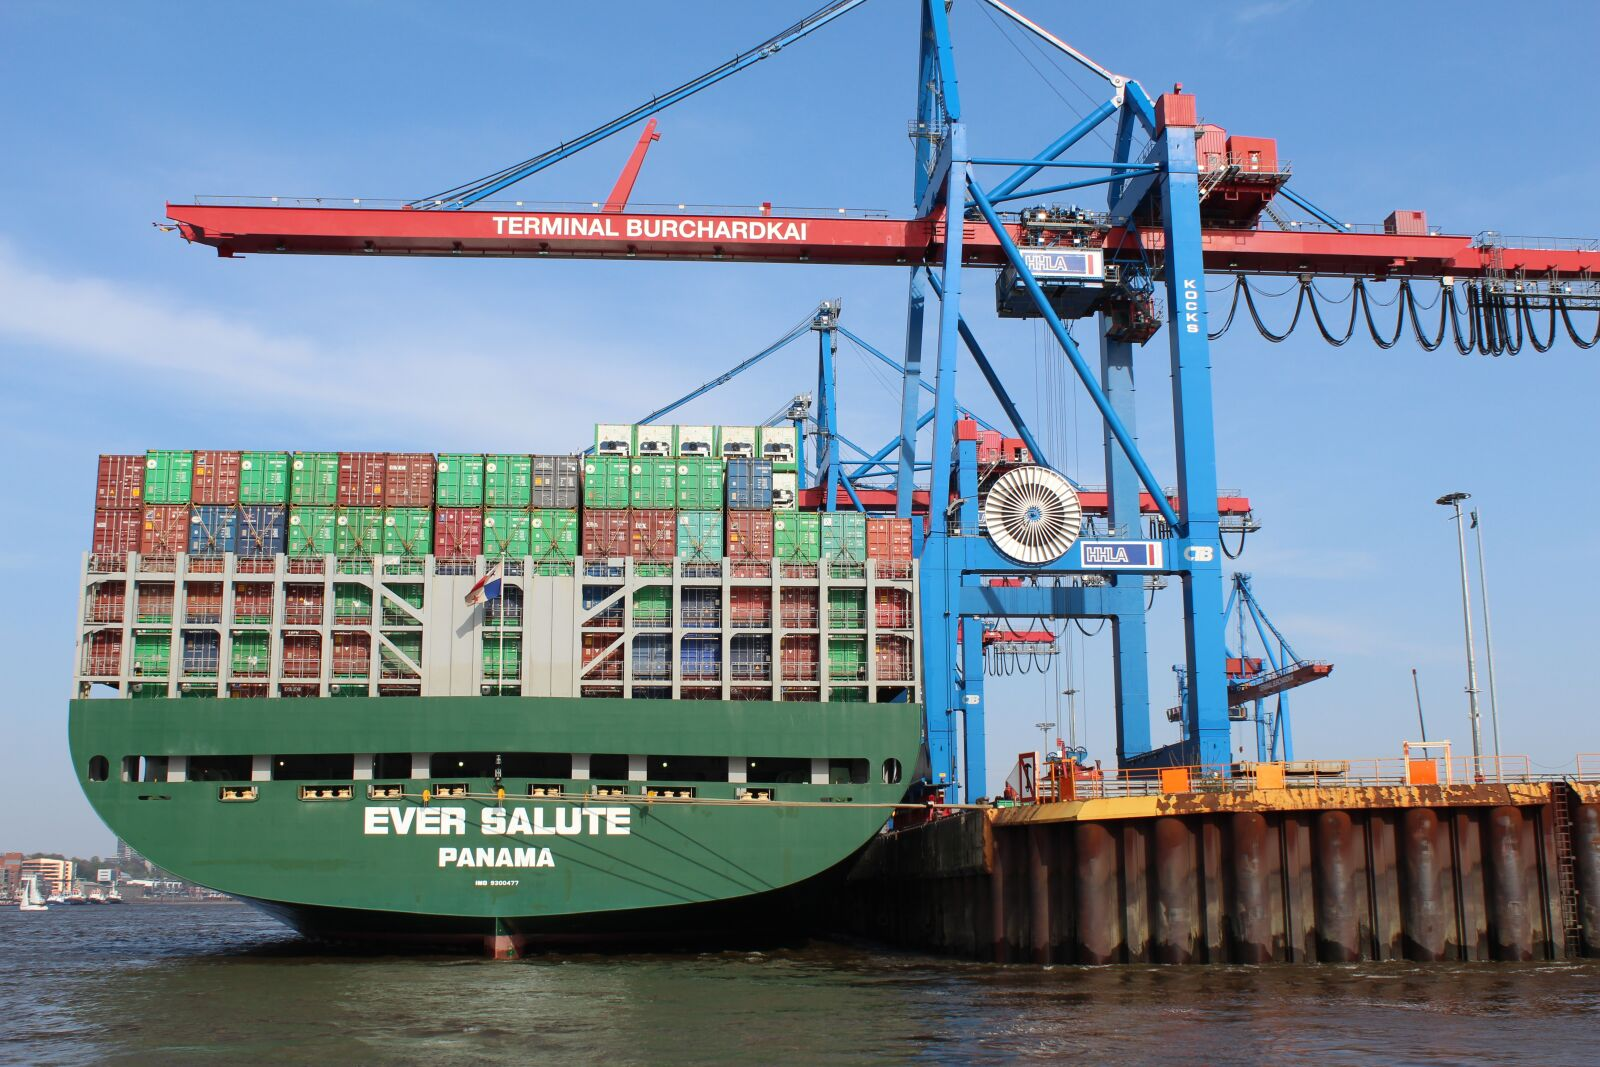 """Canon EOS 600D (Rebel EOS T3i / EOS Kiss X5) sample photo. """"Harbour, hamburg, container"""" photography"""